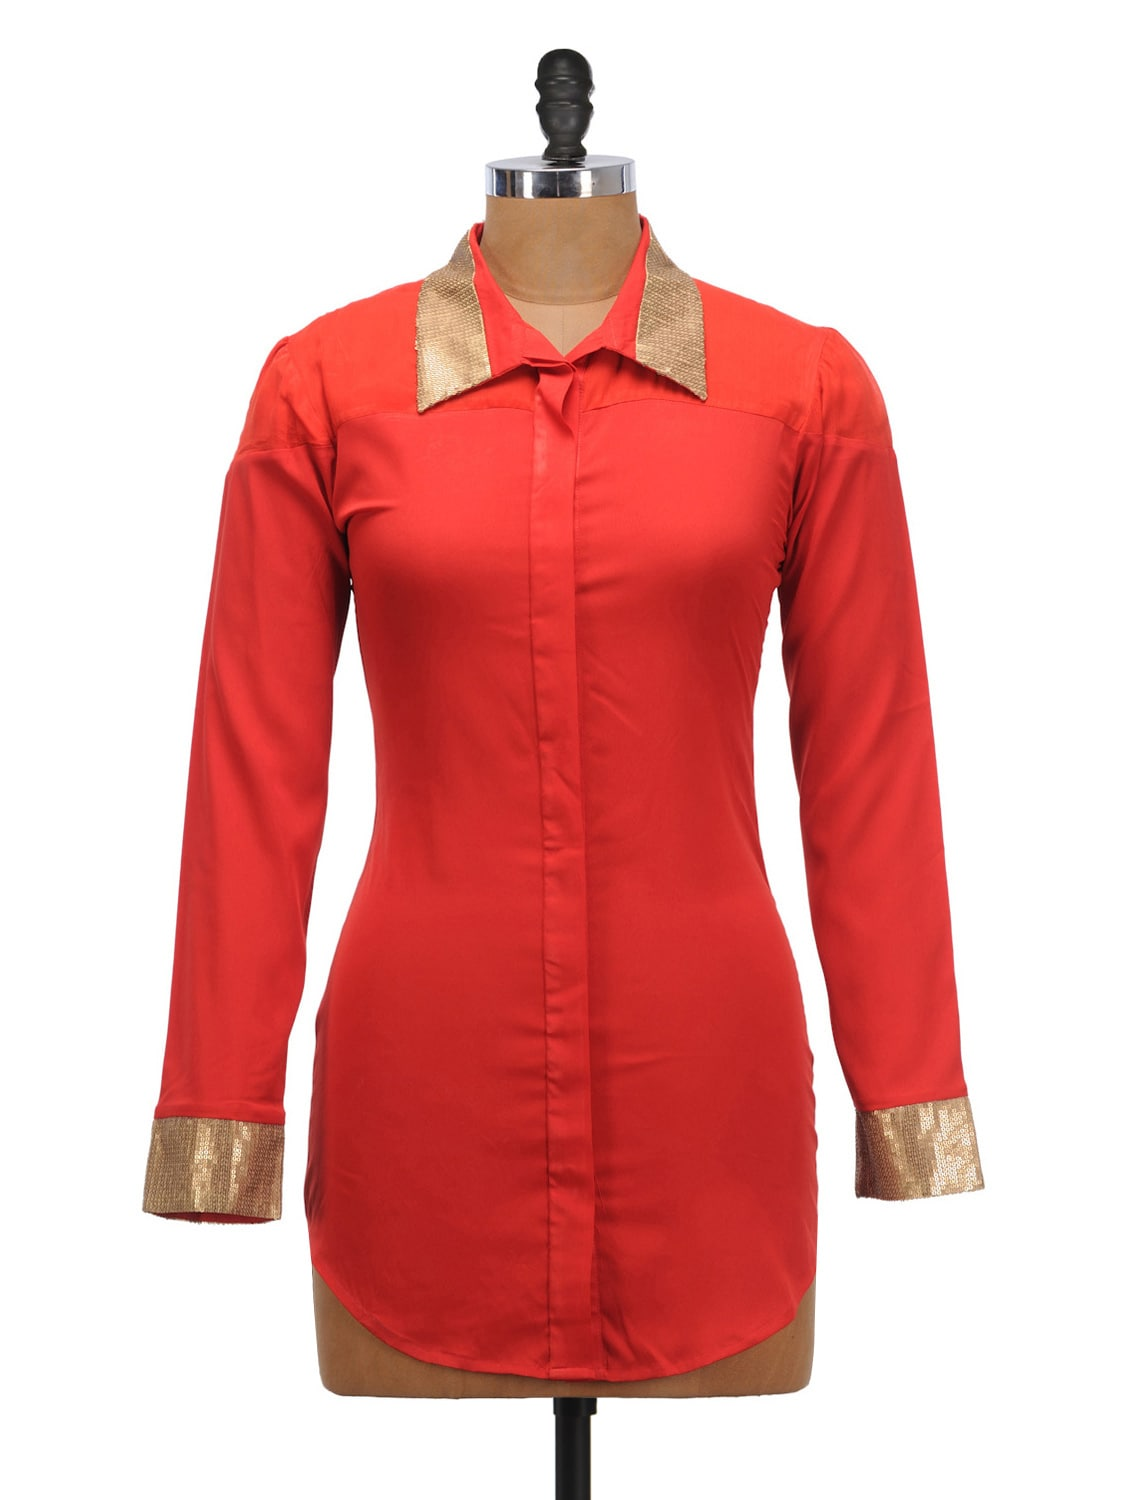 9a26fe588722c7 Buy Red Dressy Shirt With Gold Cuffs for Women from Schwof for ₹623 ...